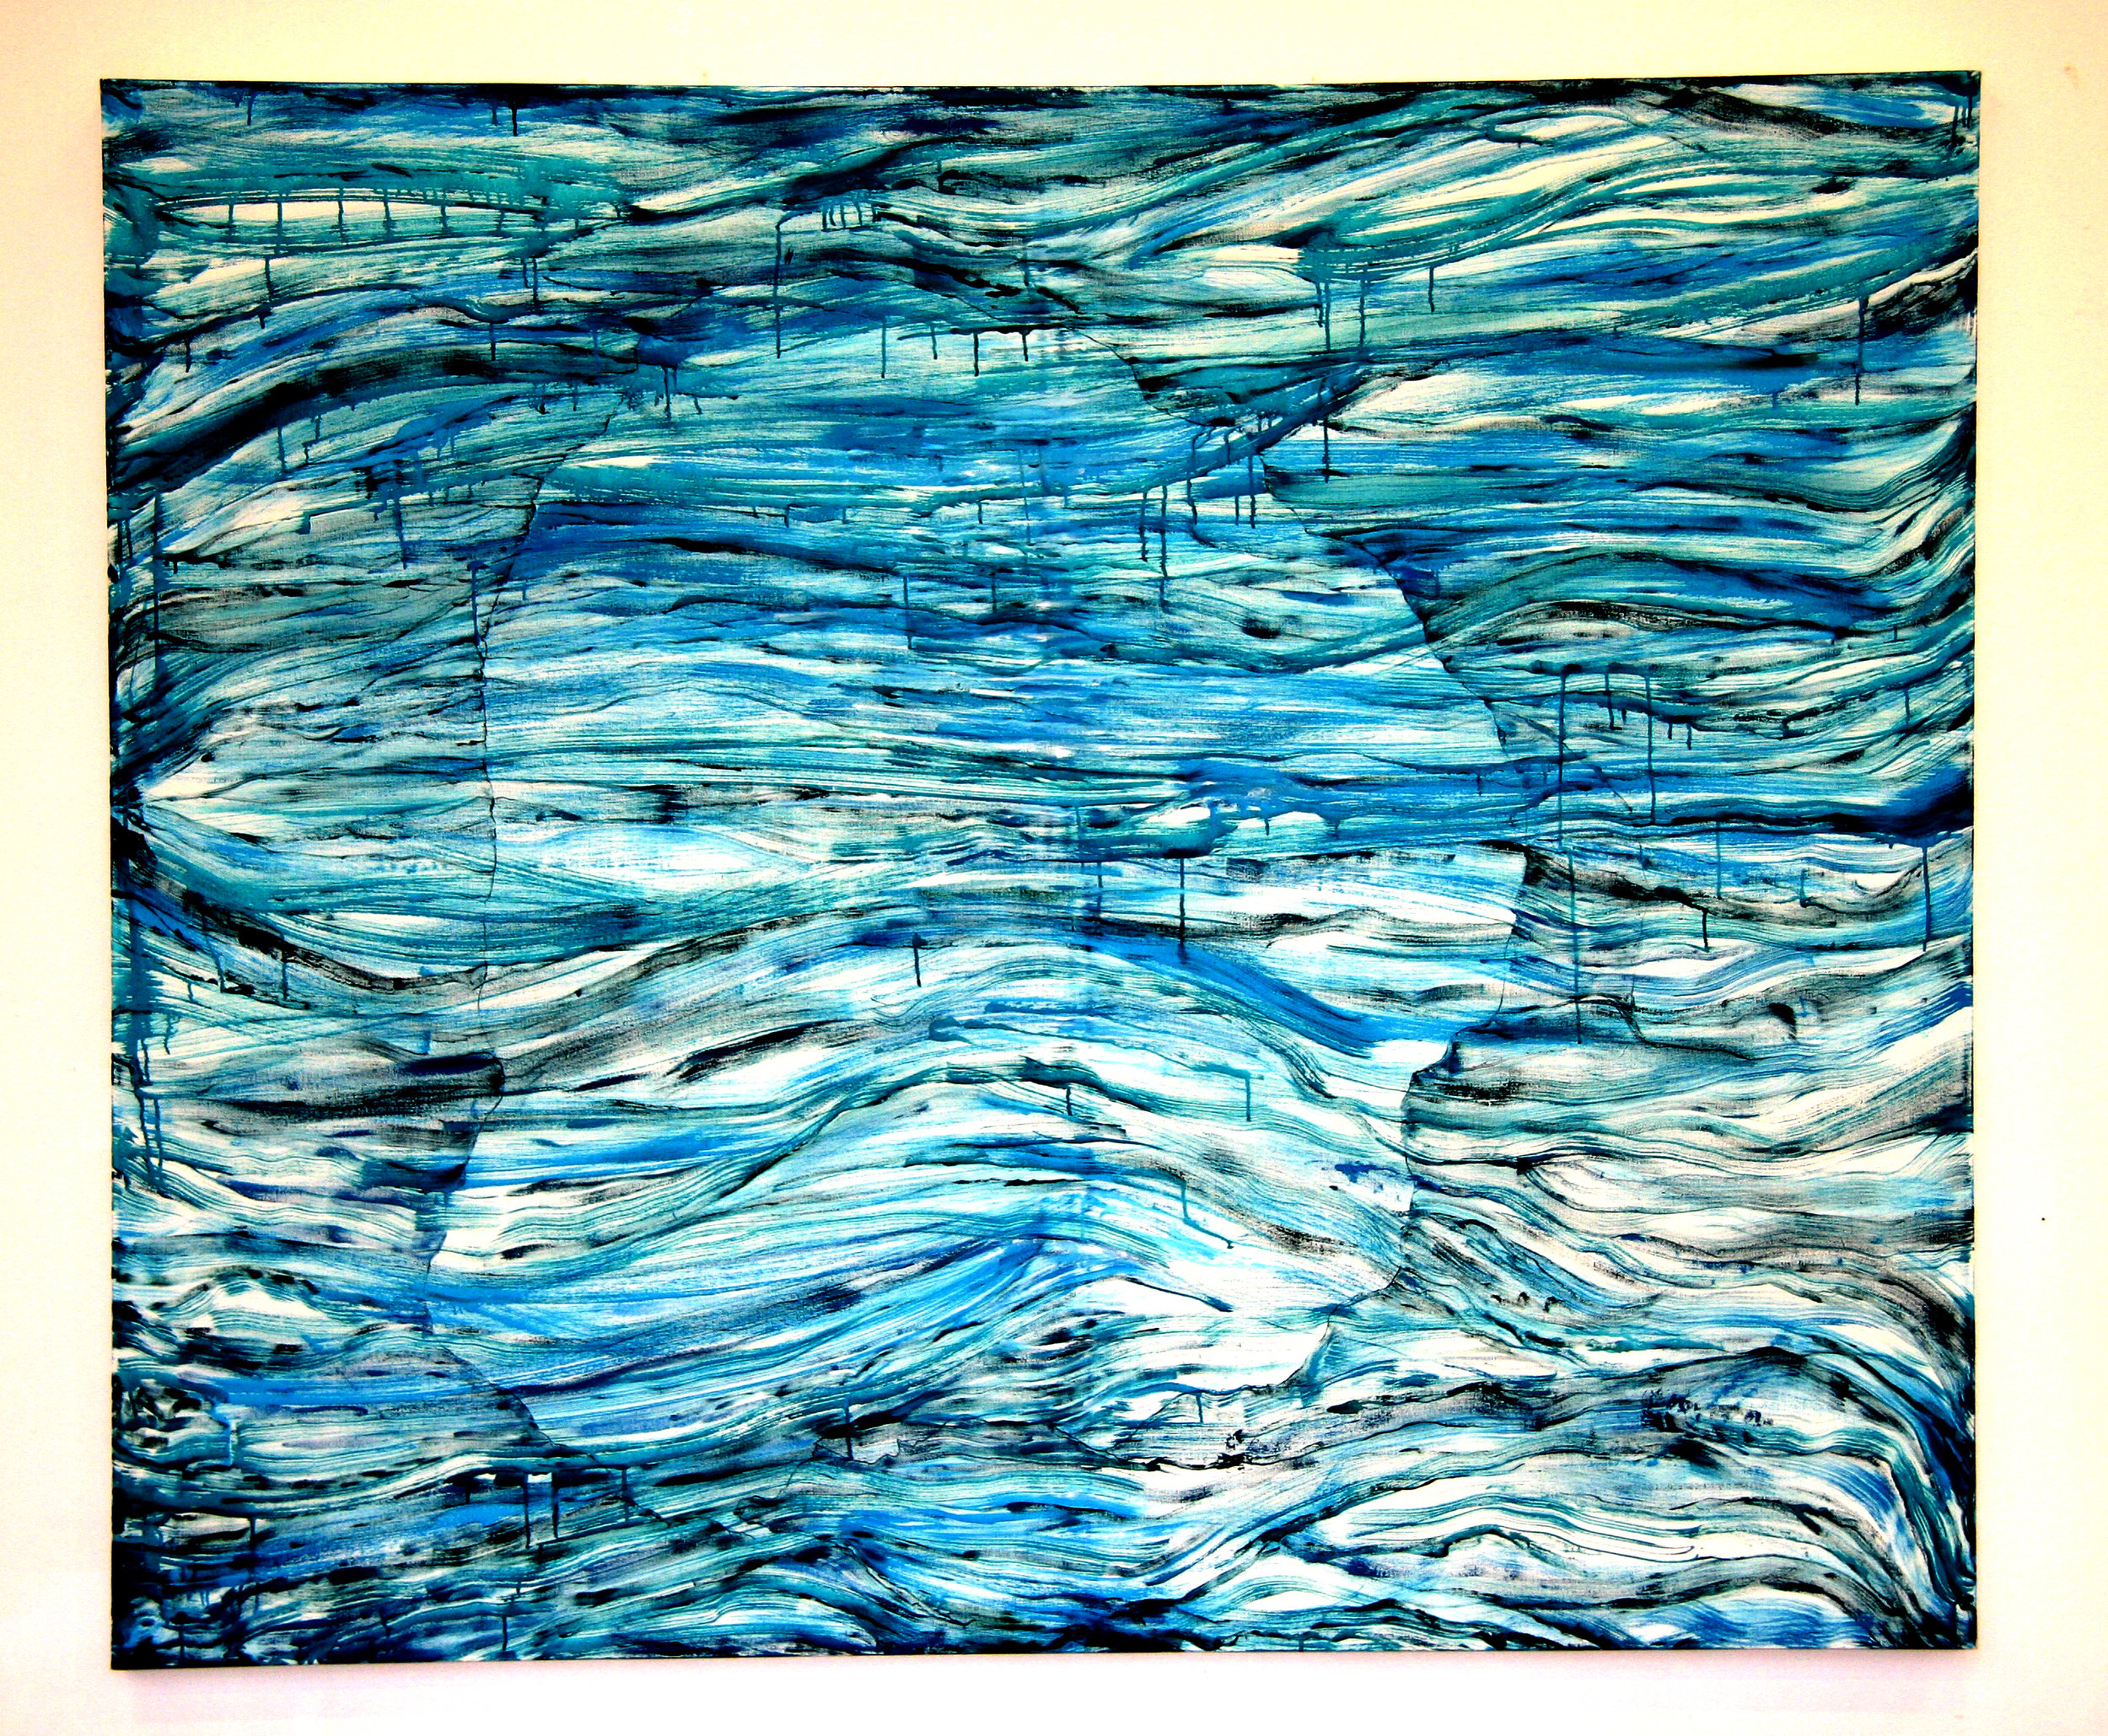 acrylic on canvas. W220 x H180 cm. 2009